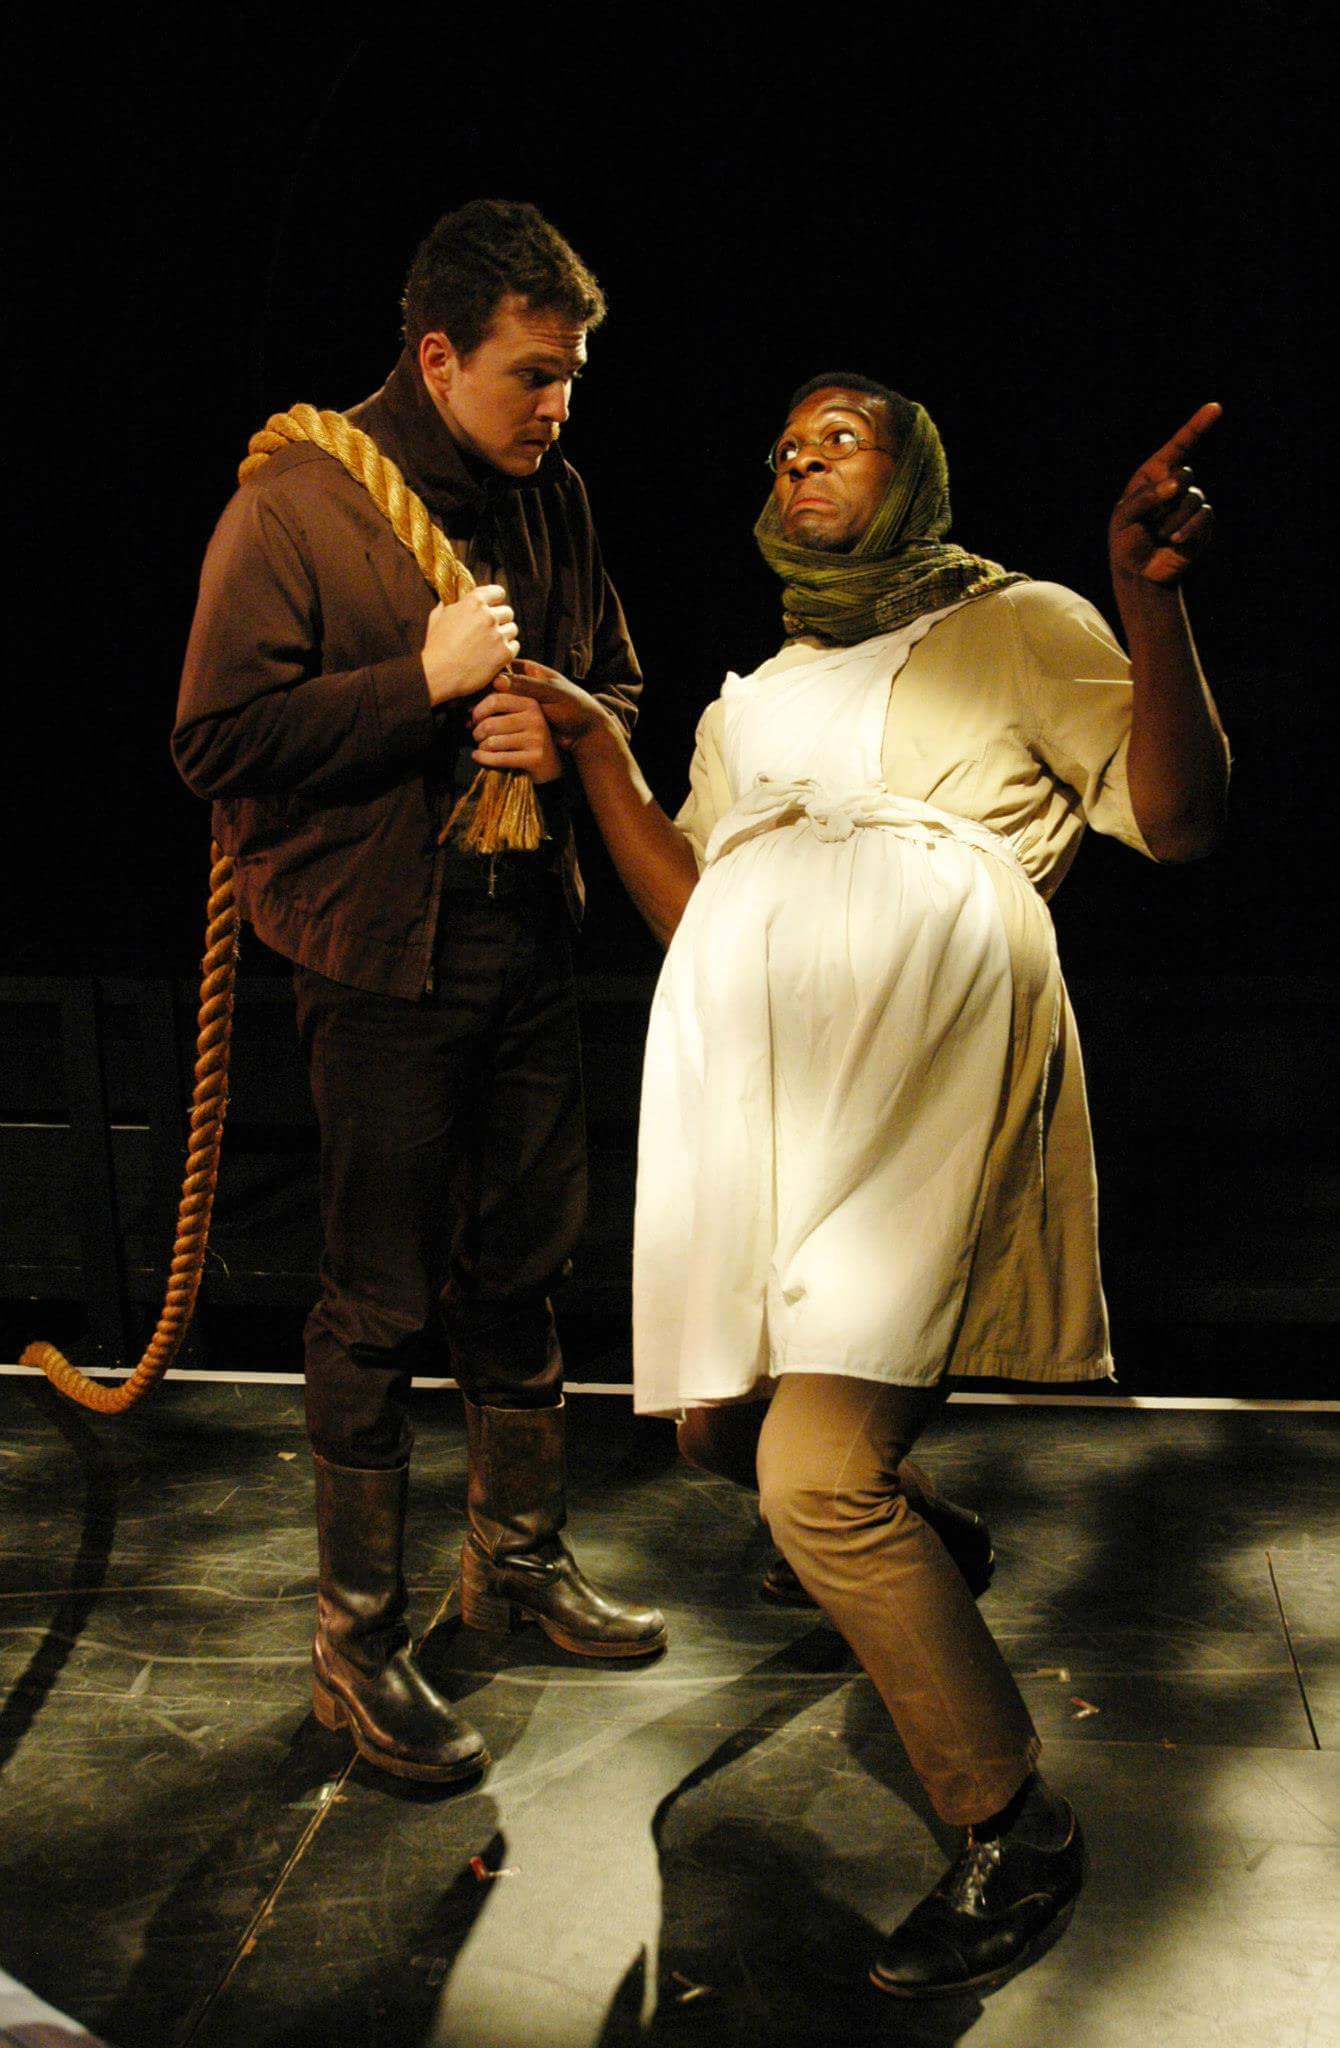 The Wind in the Willows - Quintessence Theatre